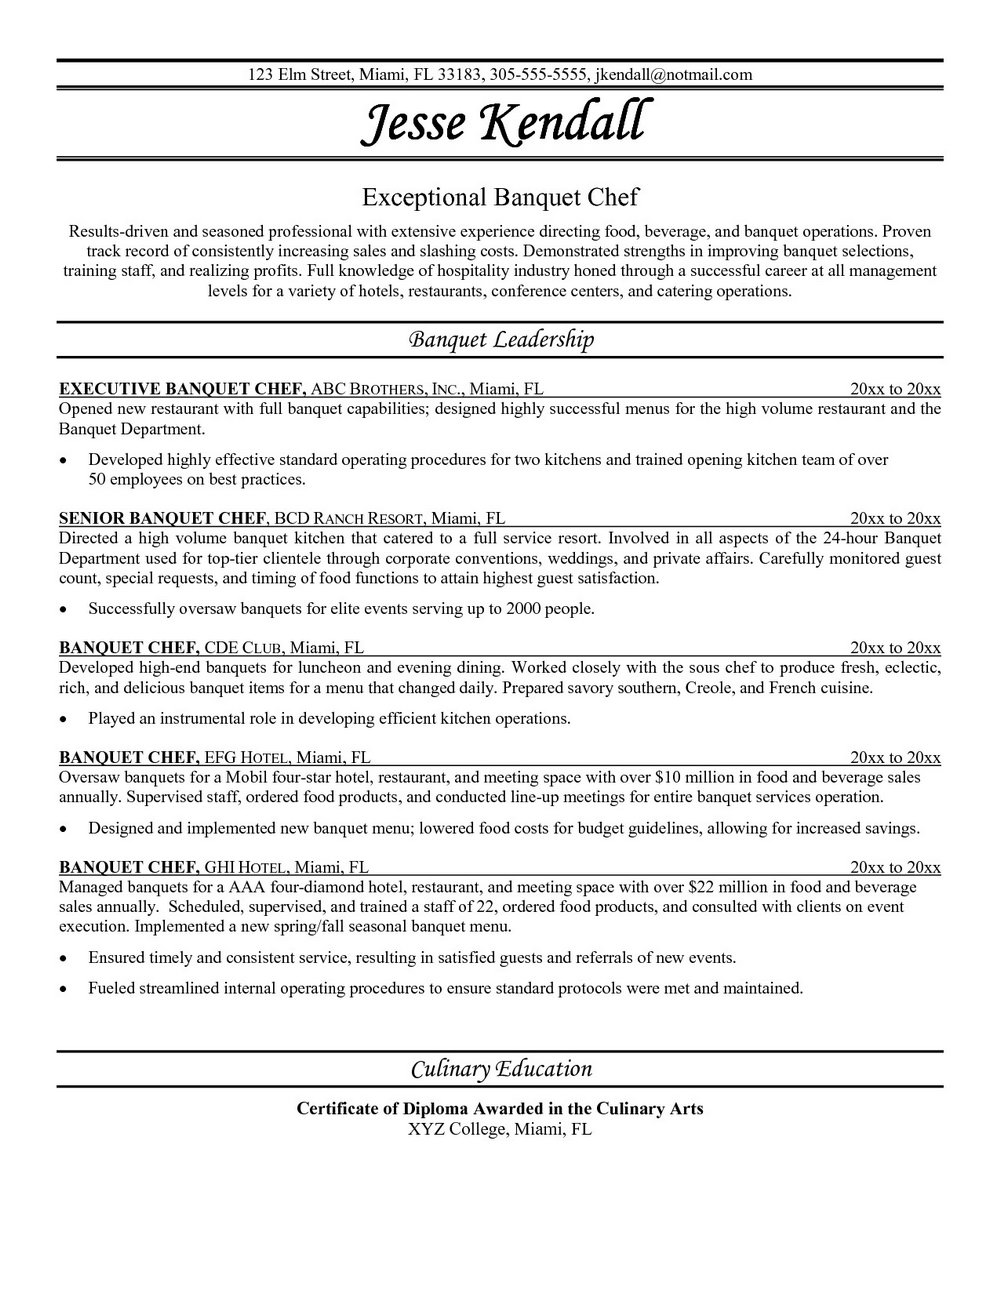 Chef Resume Template Word